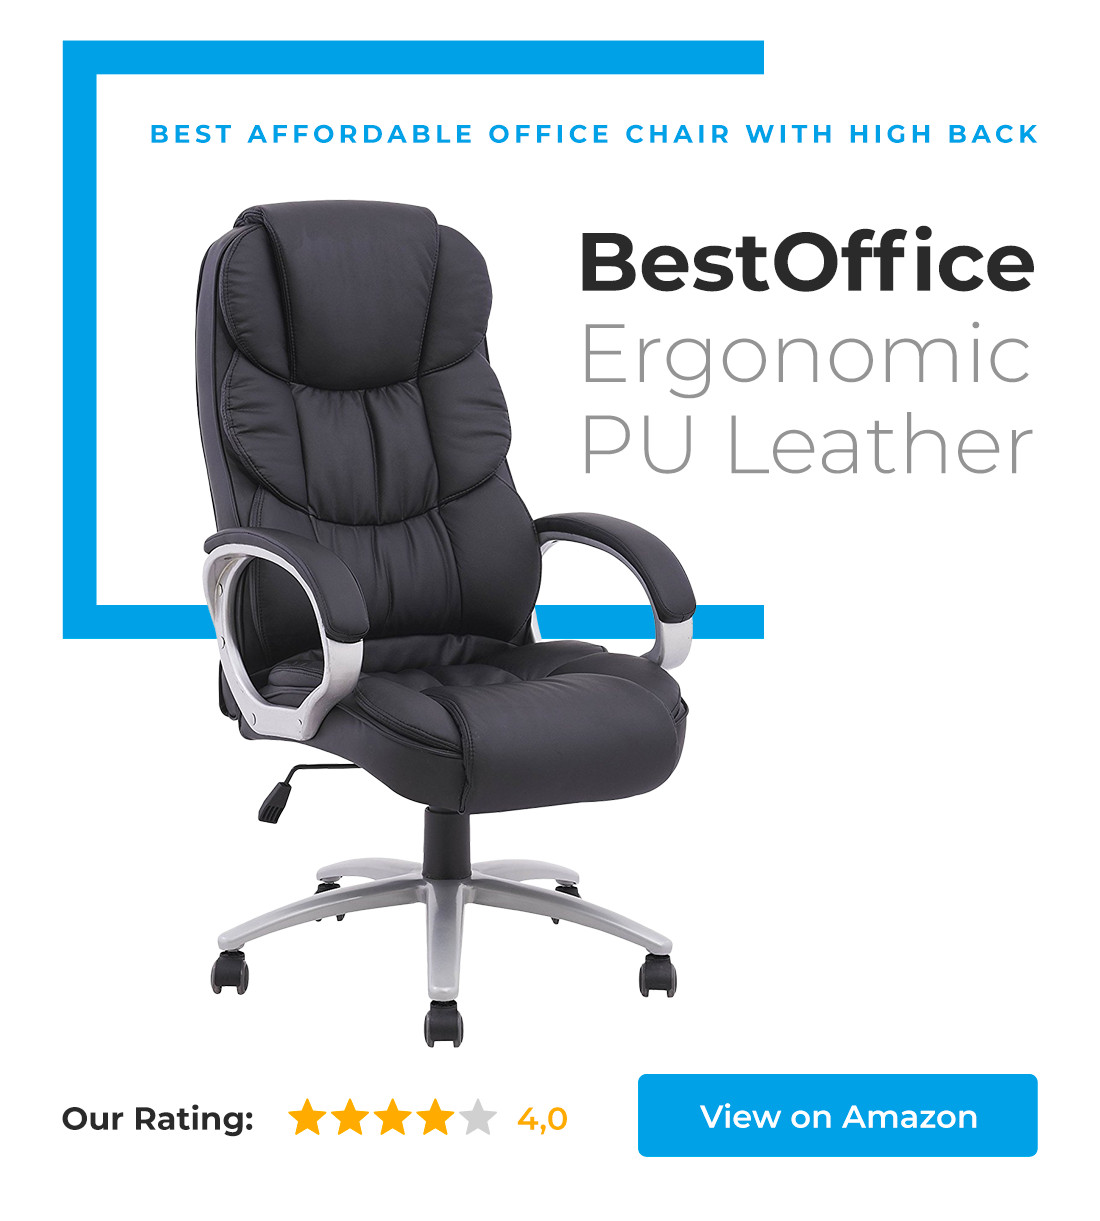 Best ideas about Best Office Chair Under 100 . Save or Pin 14 New & Best fice Chairs in 2018 Now.